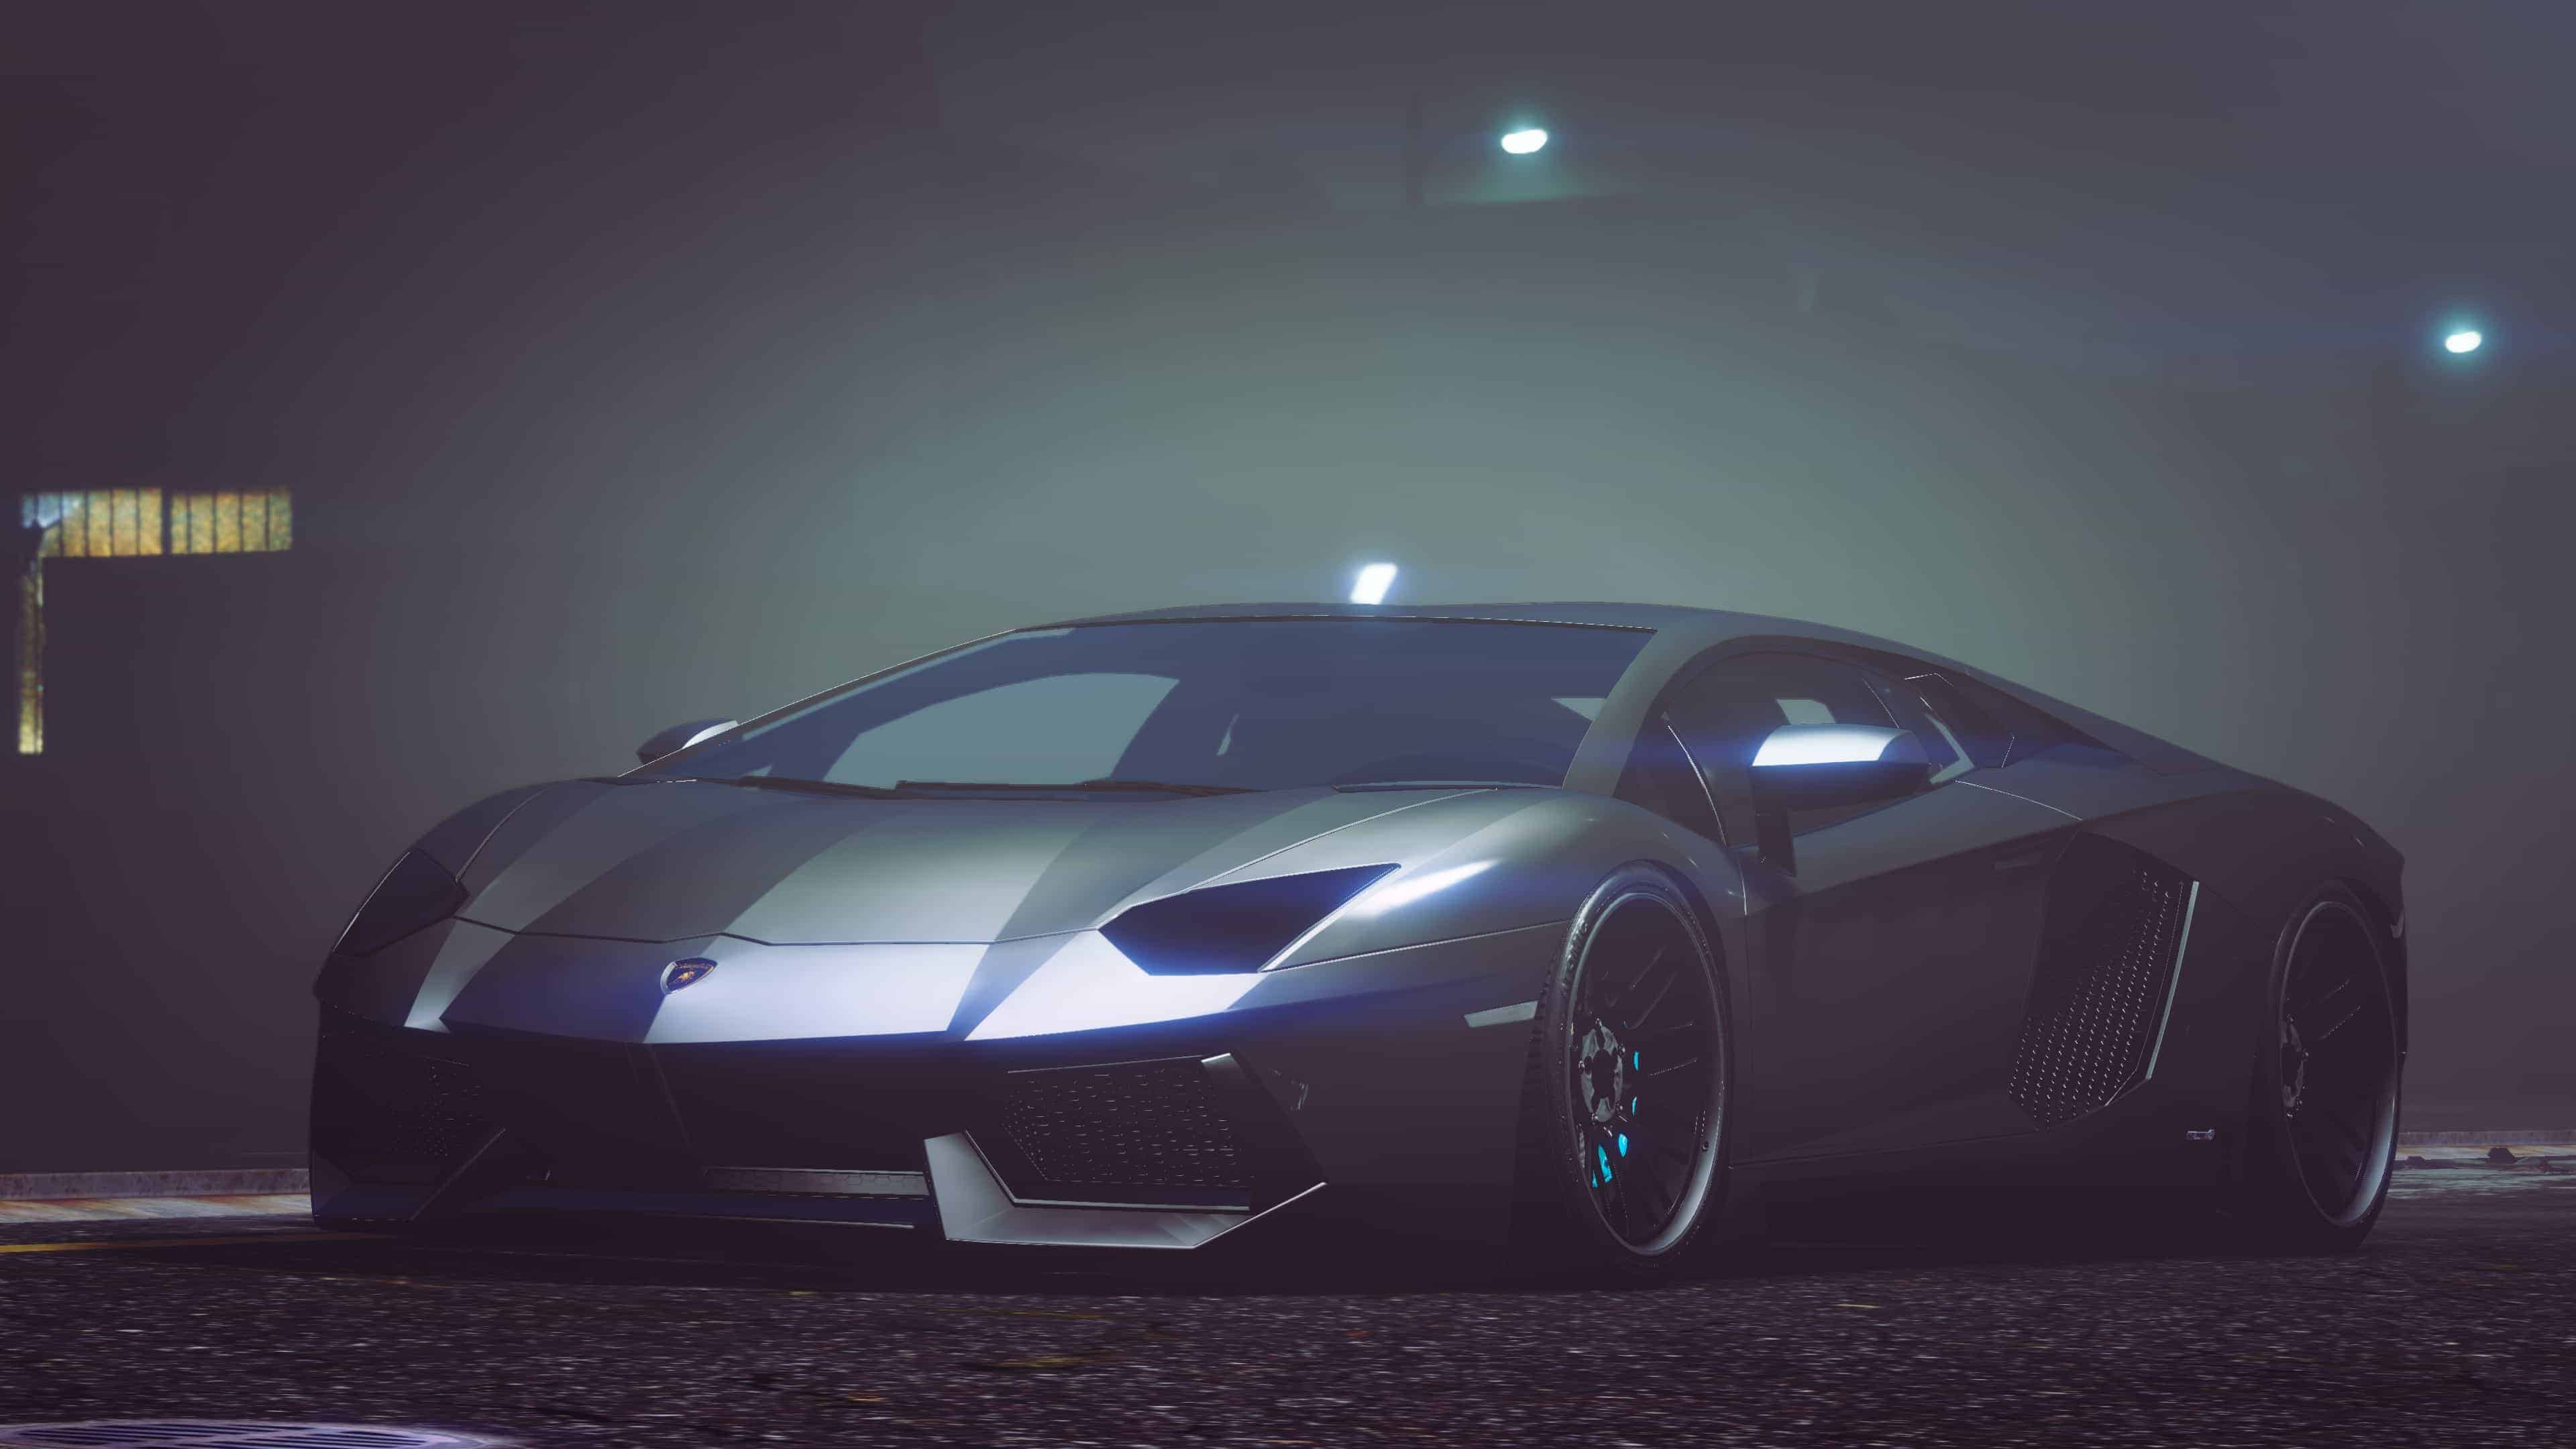 Should The Next GTA Game Have Licensed Cars?